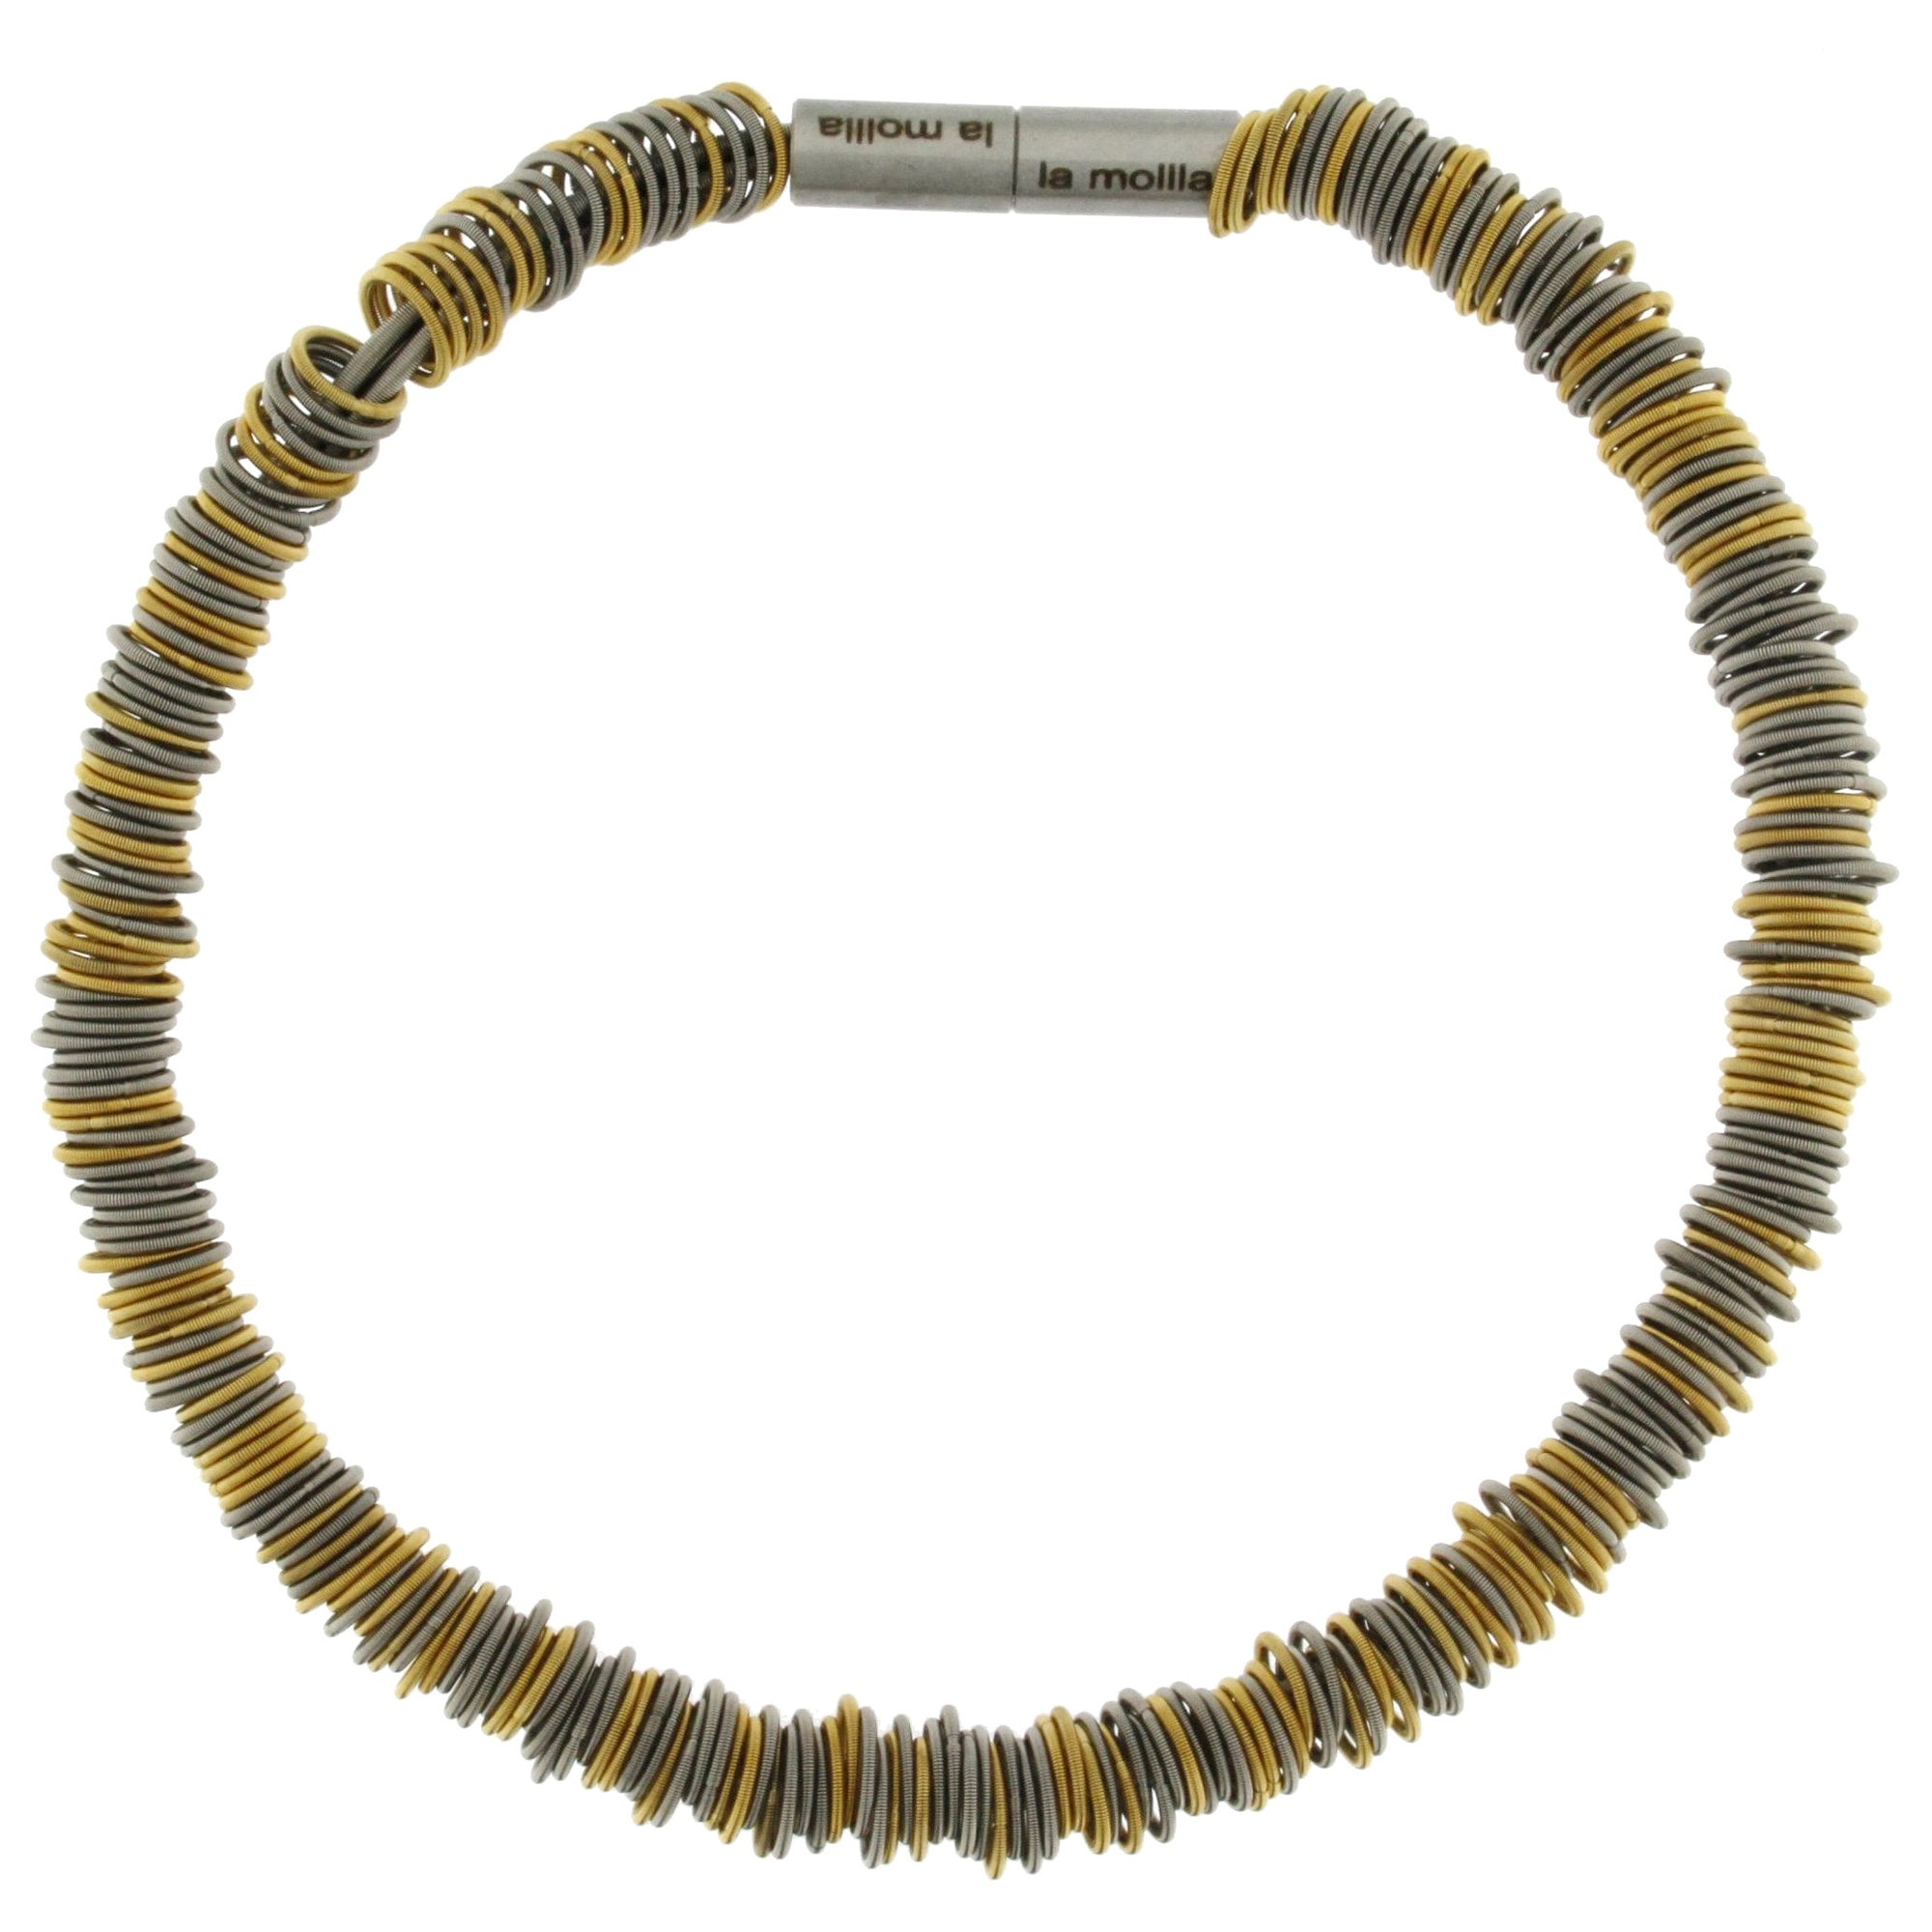 Tiziana N1 Stainless Steel Spring Gold-Plated Choker Necklace